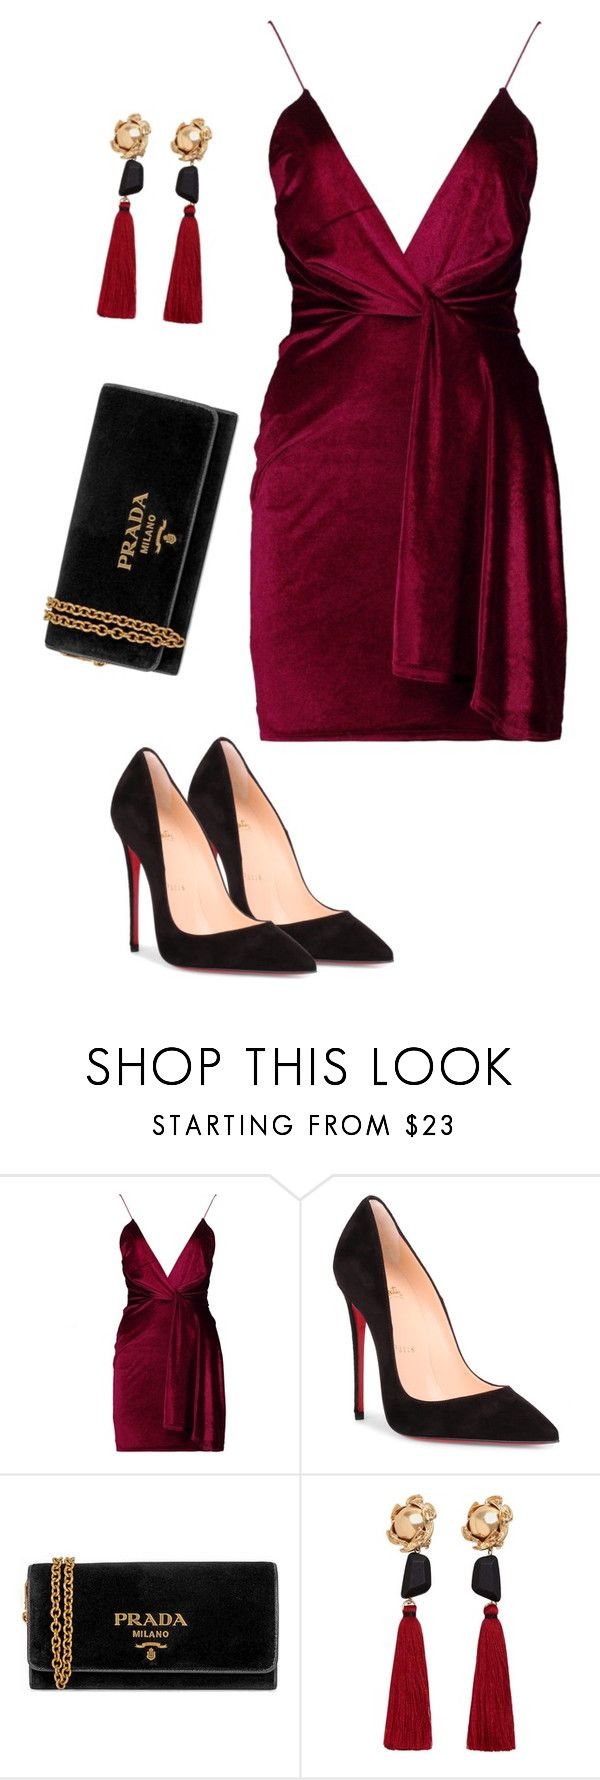 """-"" by beatricewolf ❤ liked on Polyvore featuring Boohoo, Christian Louboutin, Prada and MANGO"